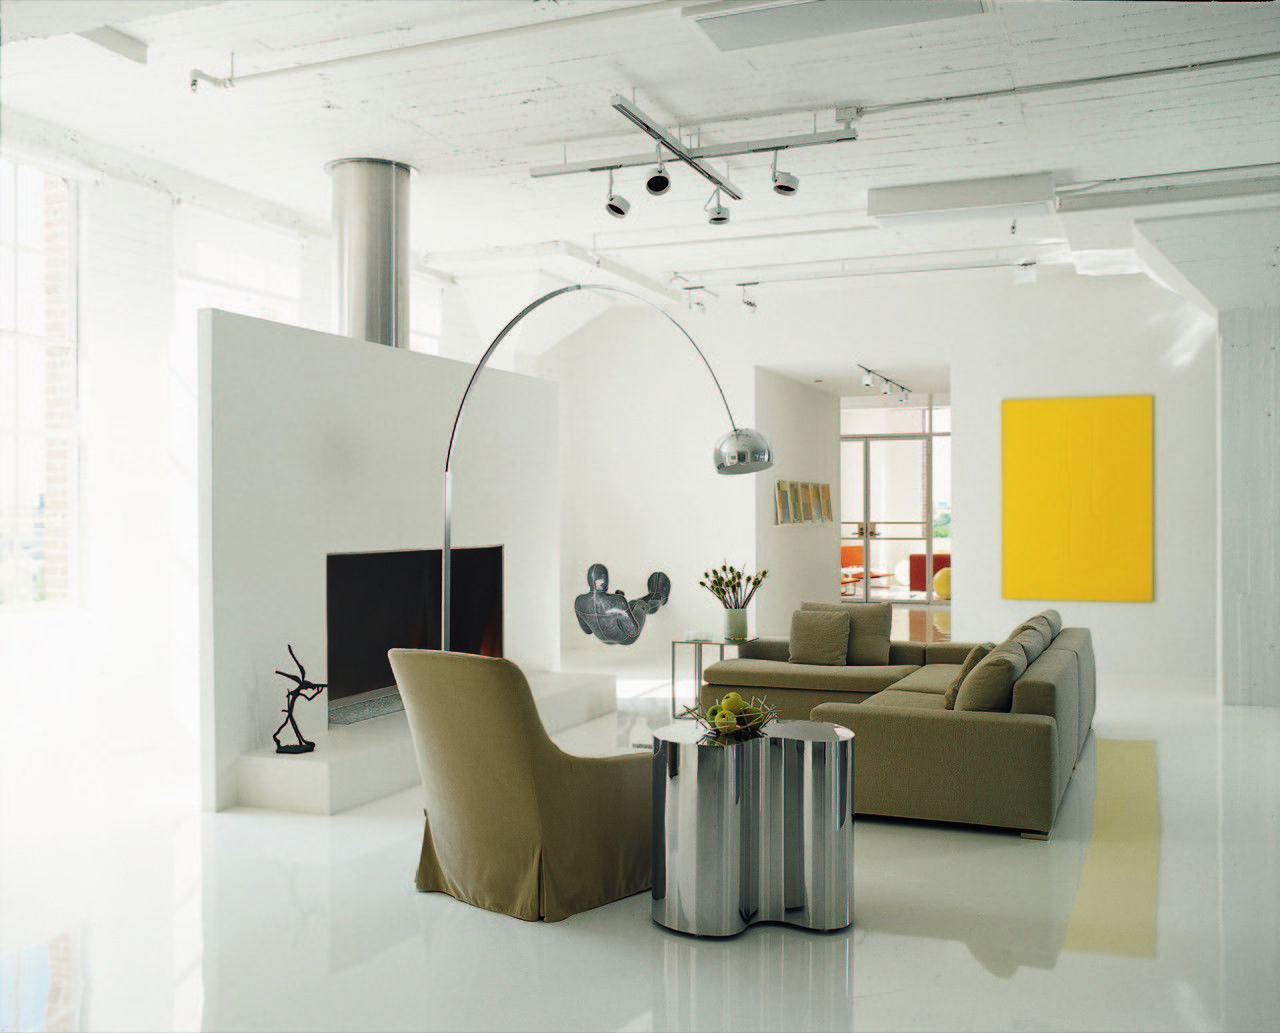 Gallery of Collector's Loft / Poteet Architects - 2